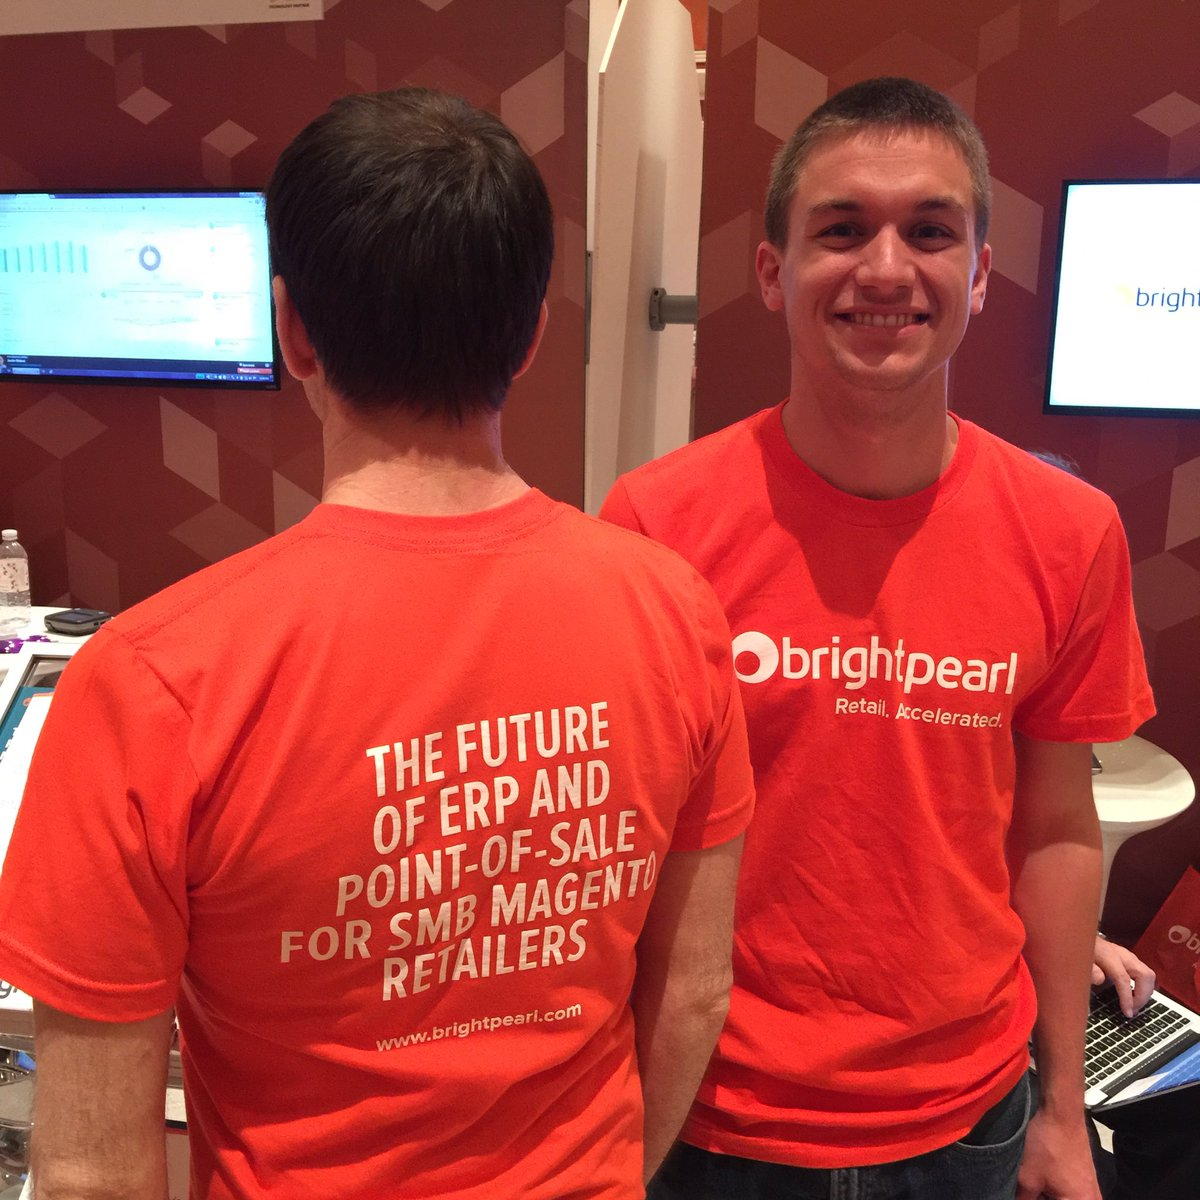 BrightpearlHQ: We have some limited edition #MagentoImagine Brightpearl t-shirts to give away on our booth.First come first served! https://t.co/A9IYSaDxef